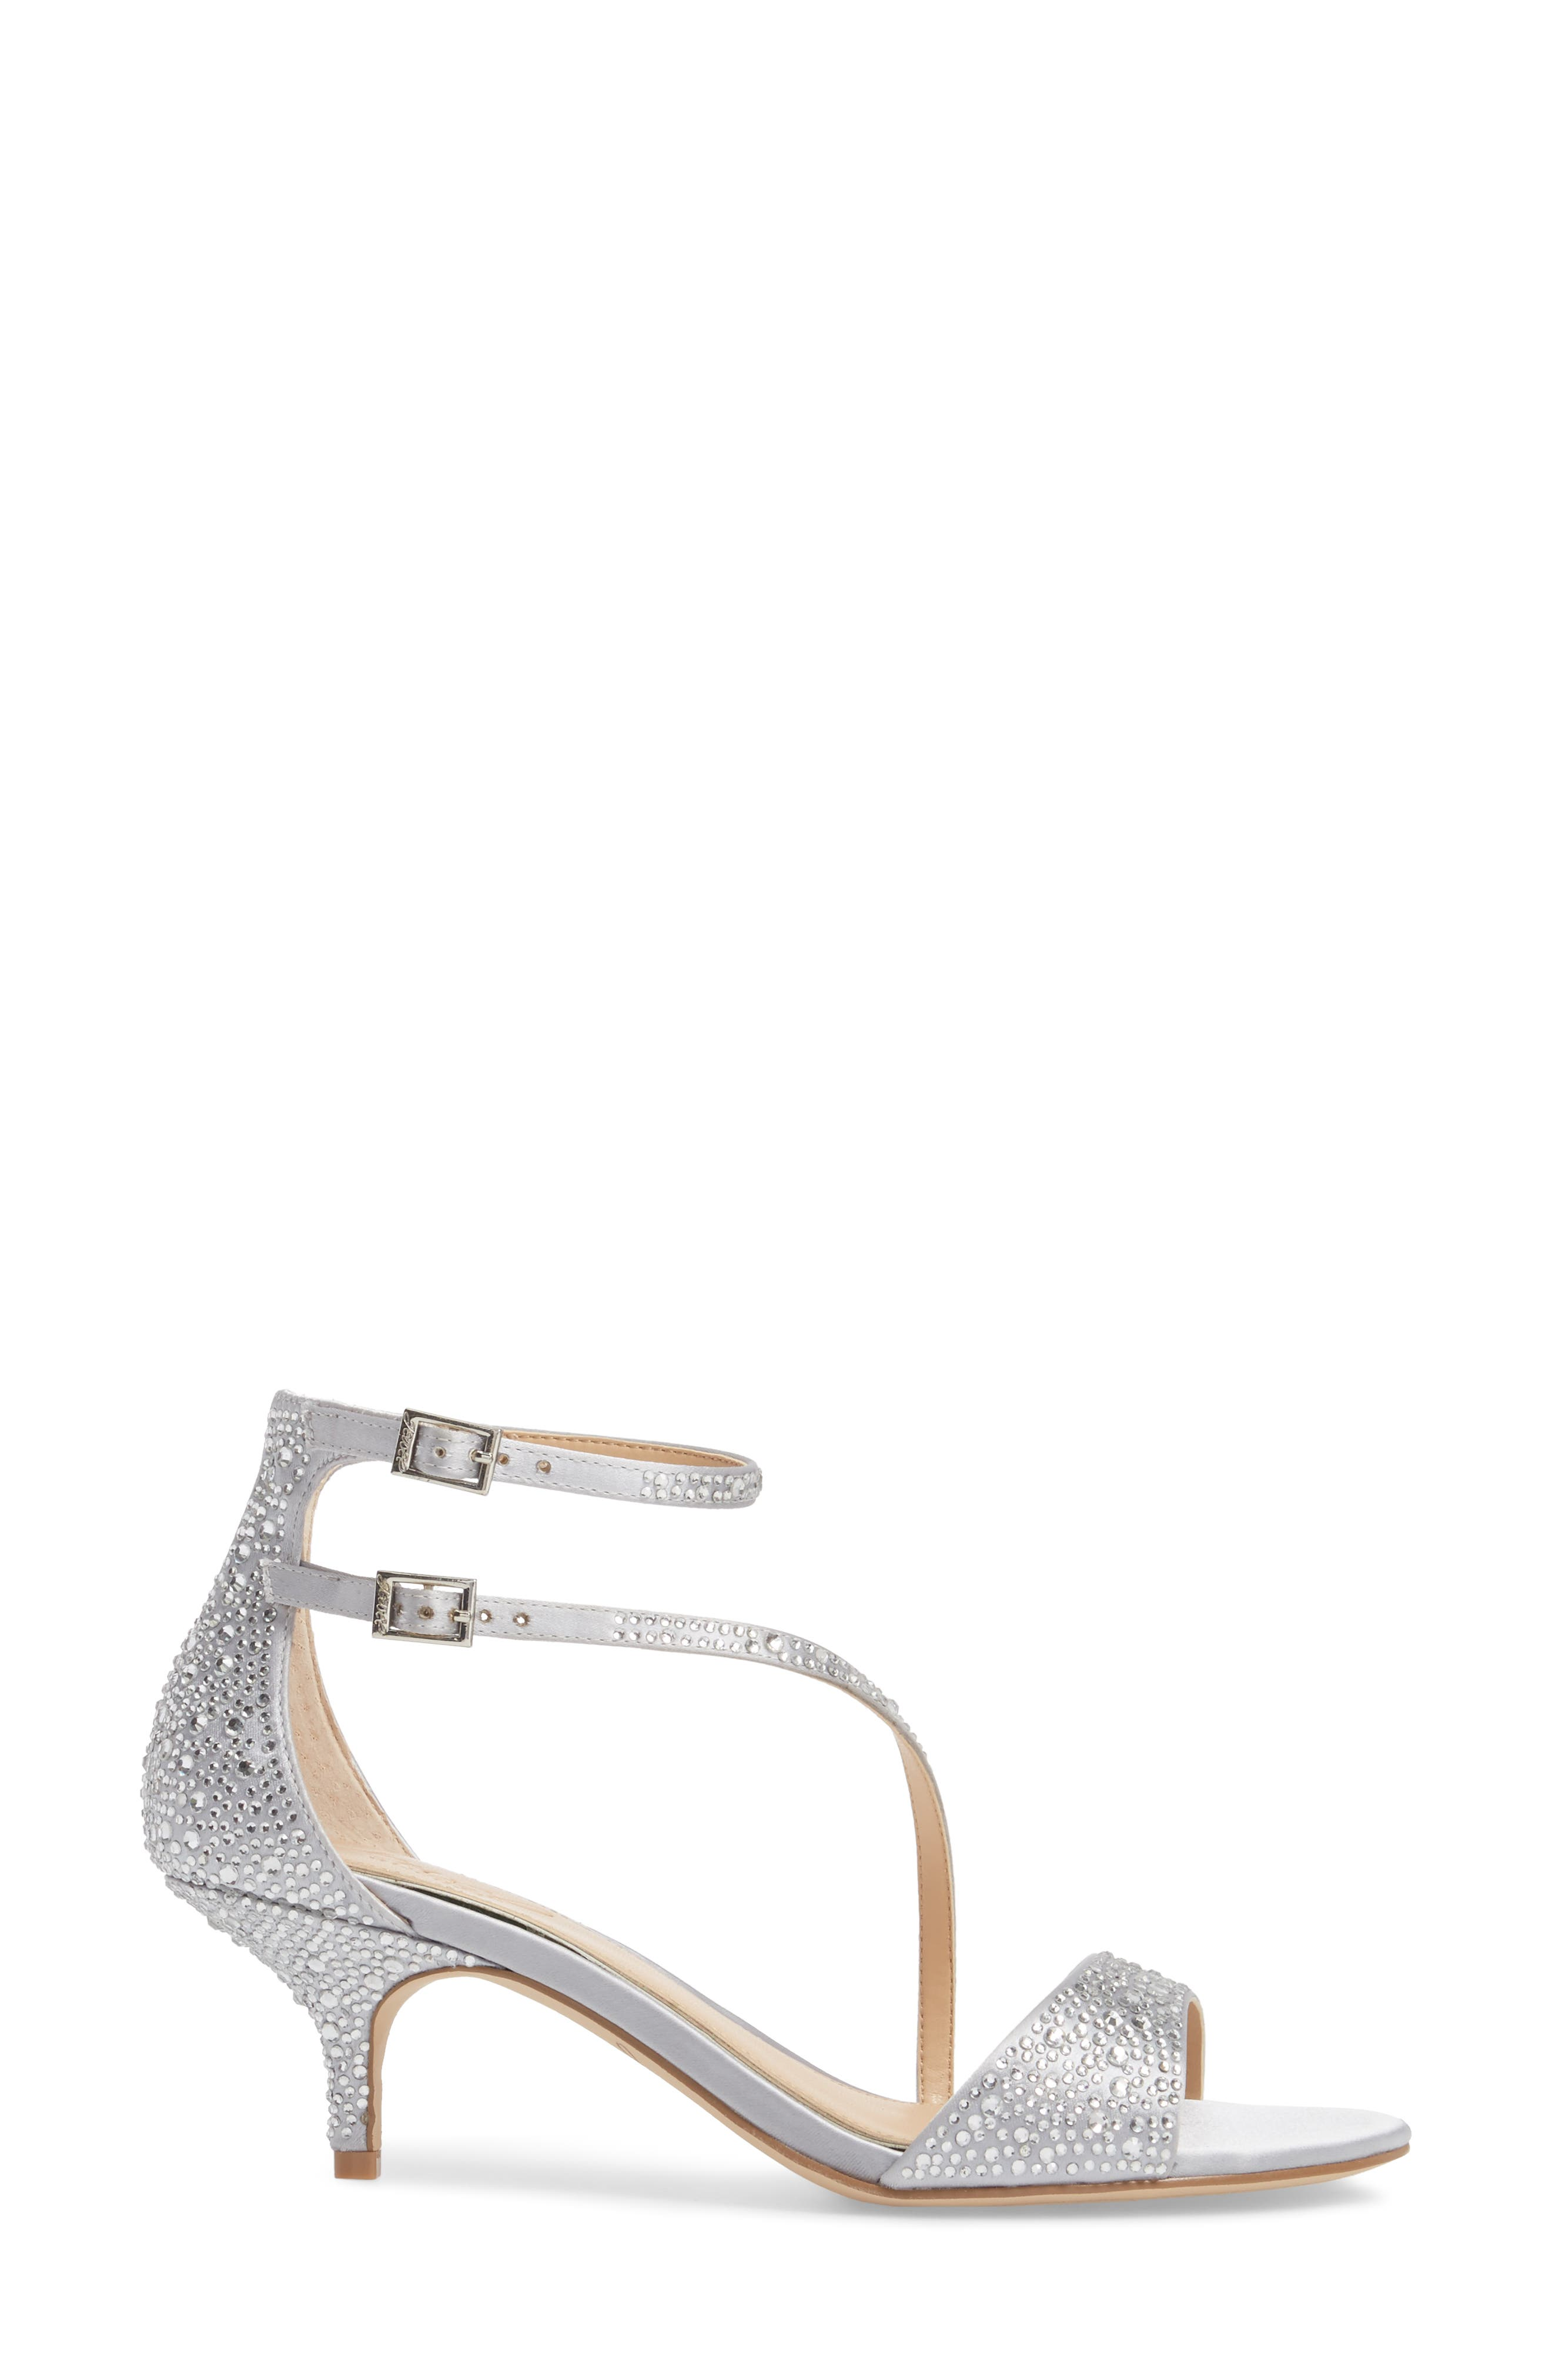 Tangerine Crystal Embellished Sandal,                             Alternate thumbnail 3, color,                             Silver Satin